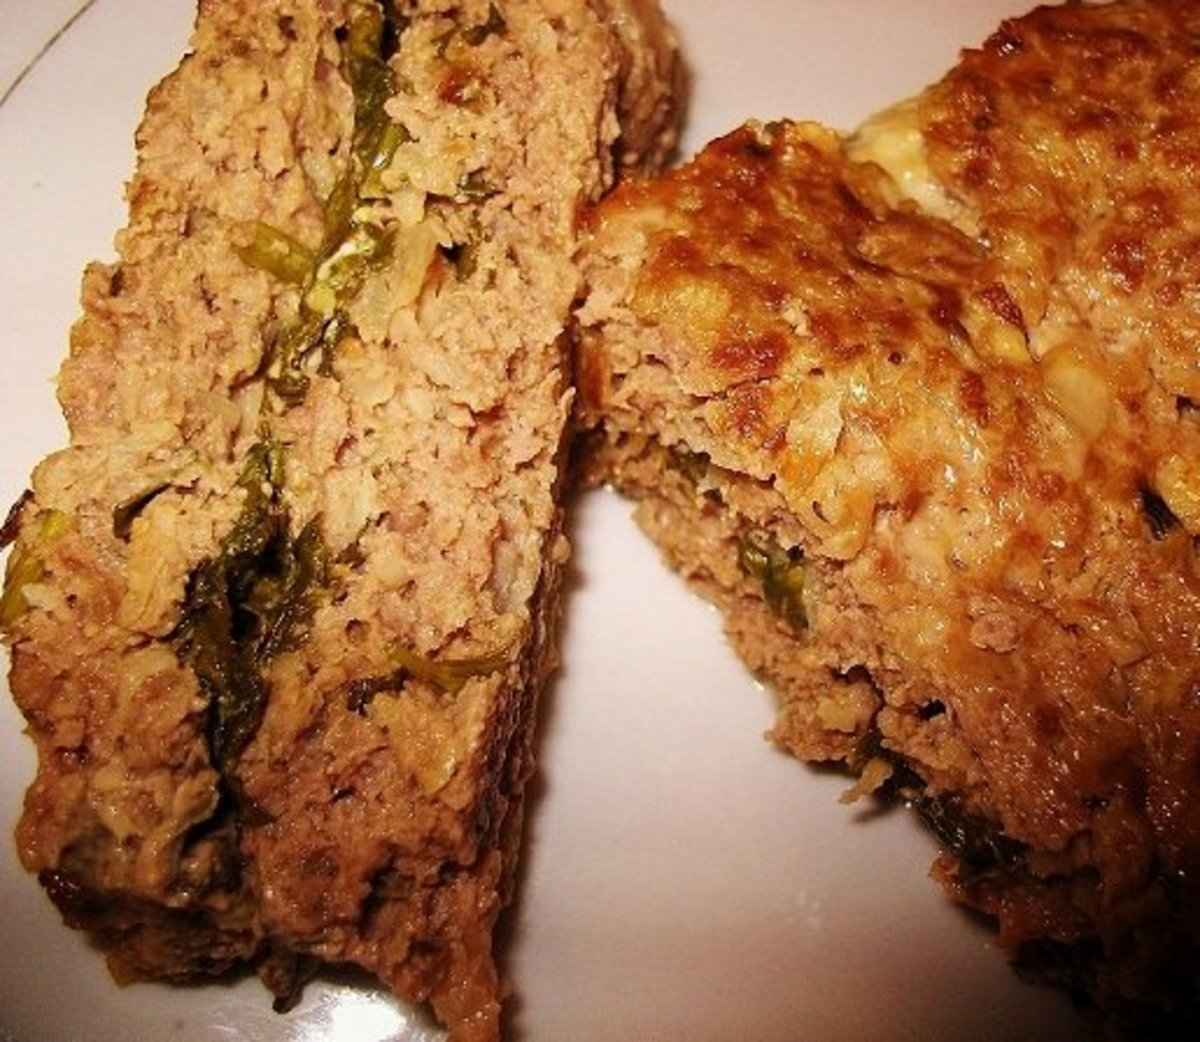 Easy Diabetic Dinner - Stuffed Meatloaf Recipe (Step-By-Step with Pictures)